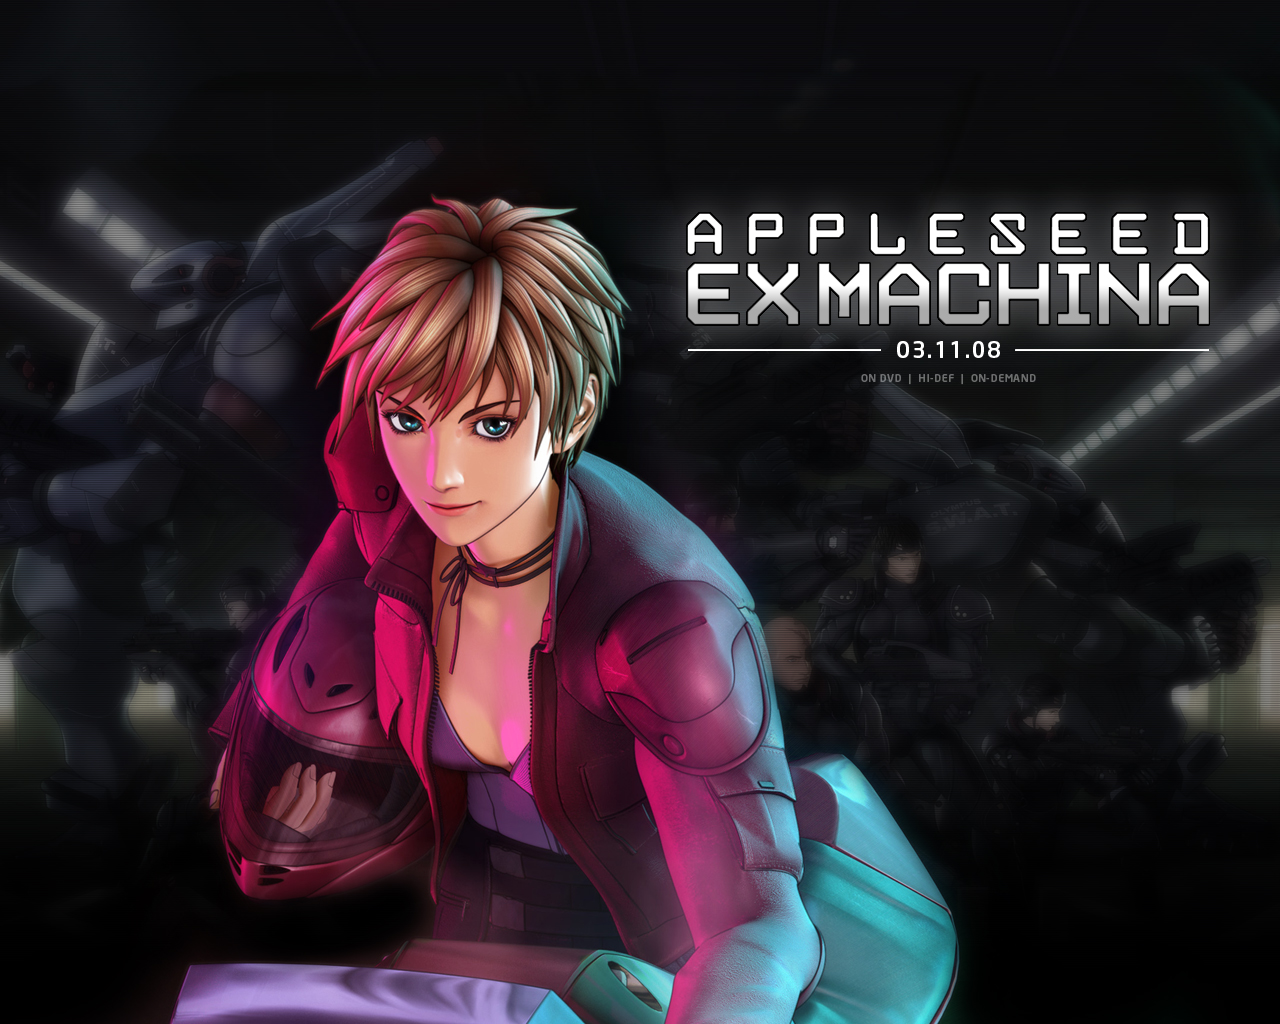 Appleseed_Ex_Machina_02_1280x1024.jpg